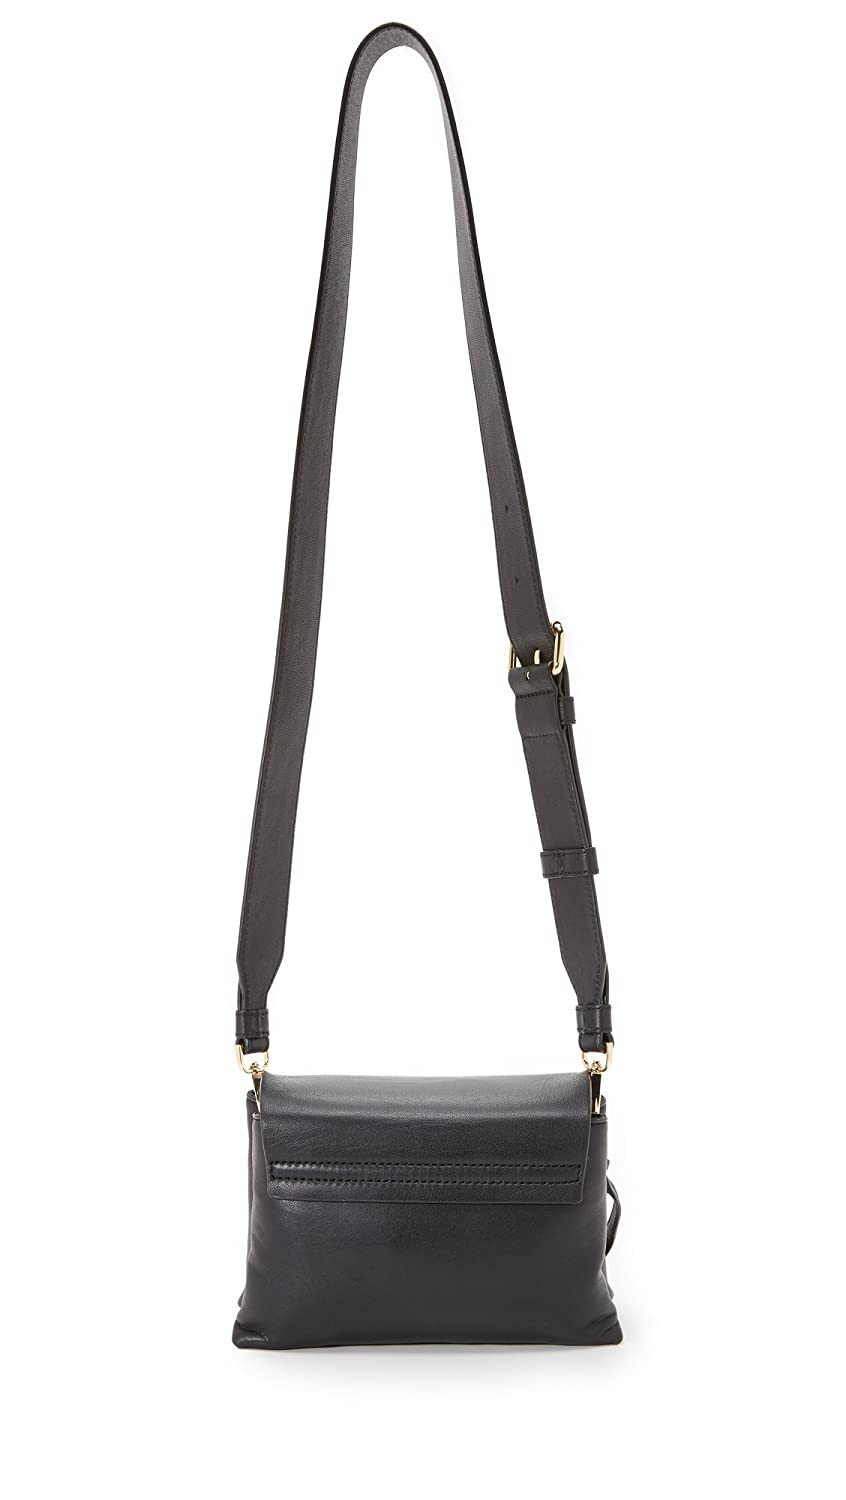 8128953583 DKNY Laura Black Leather Mini Front Flap Wide Strap Cross-Body Bag Black  Leather  Amazon.co.uk  Shoes   Bags